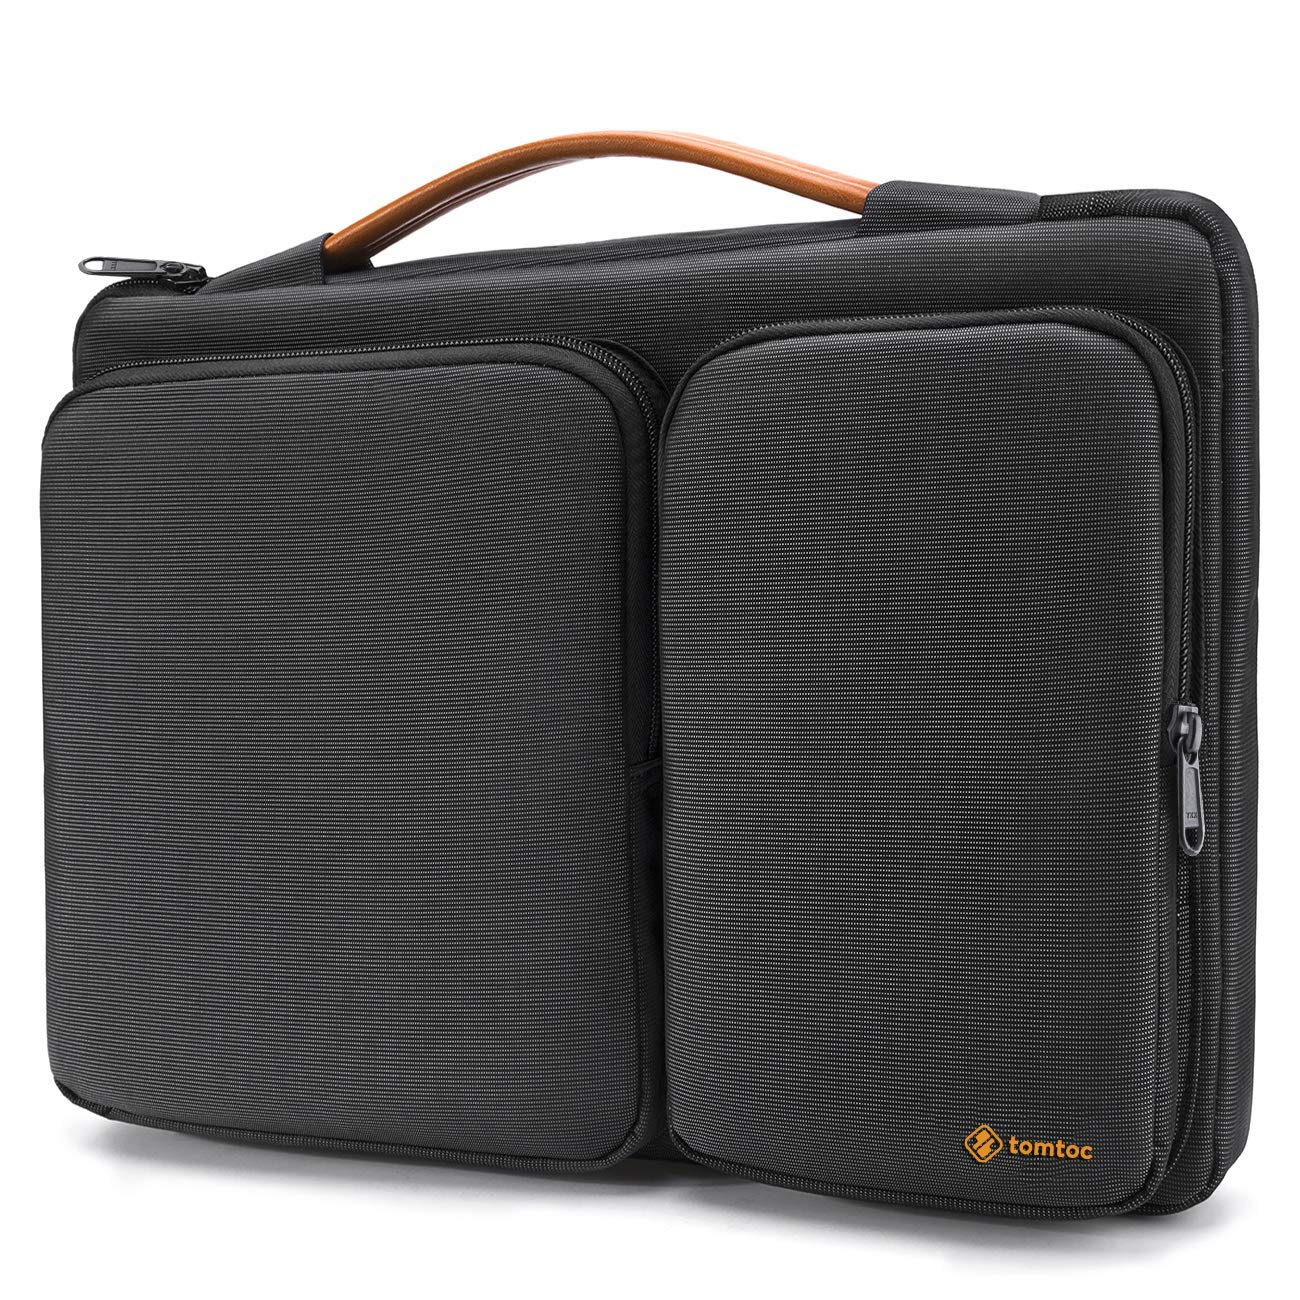 tomtoc 360 Protective Laptop Case for 15.6 Inch Acer Aspire E 15, Dell Inspiron 15 3000 Laptop, The New Razer Blade 15, HP Pavilion Laptop and More Asus Thinkpad Notebooks Ultrabooks